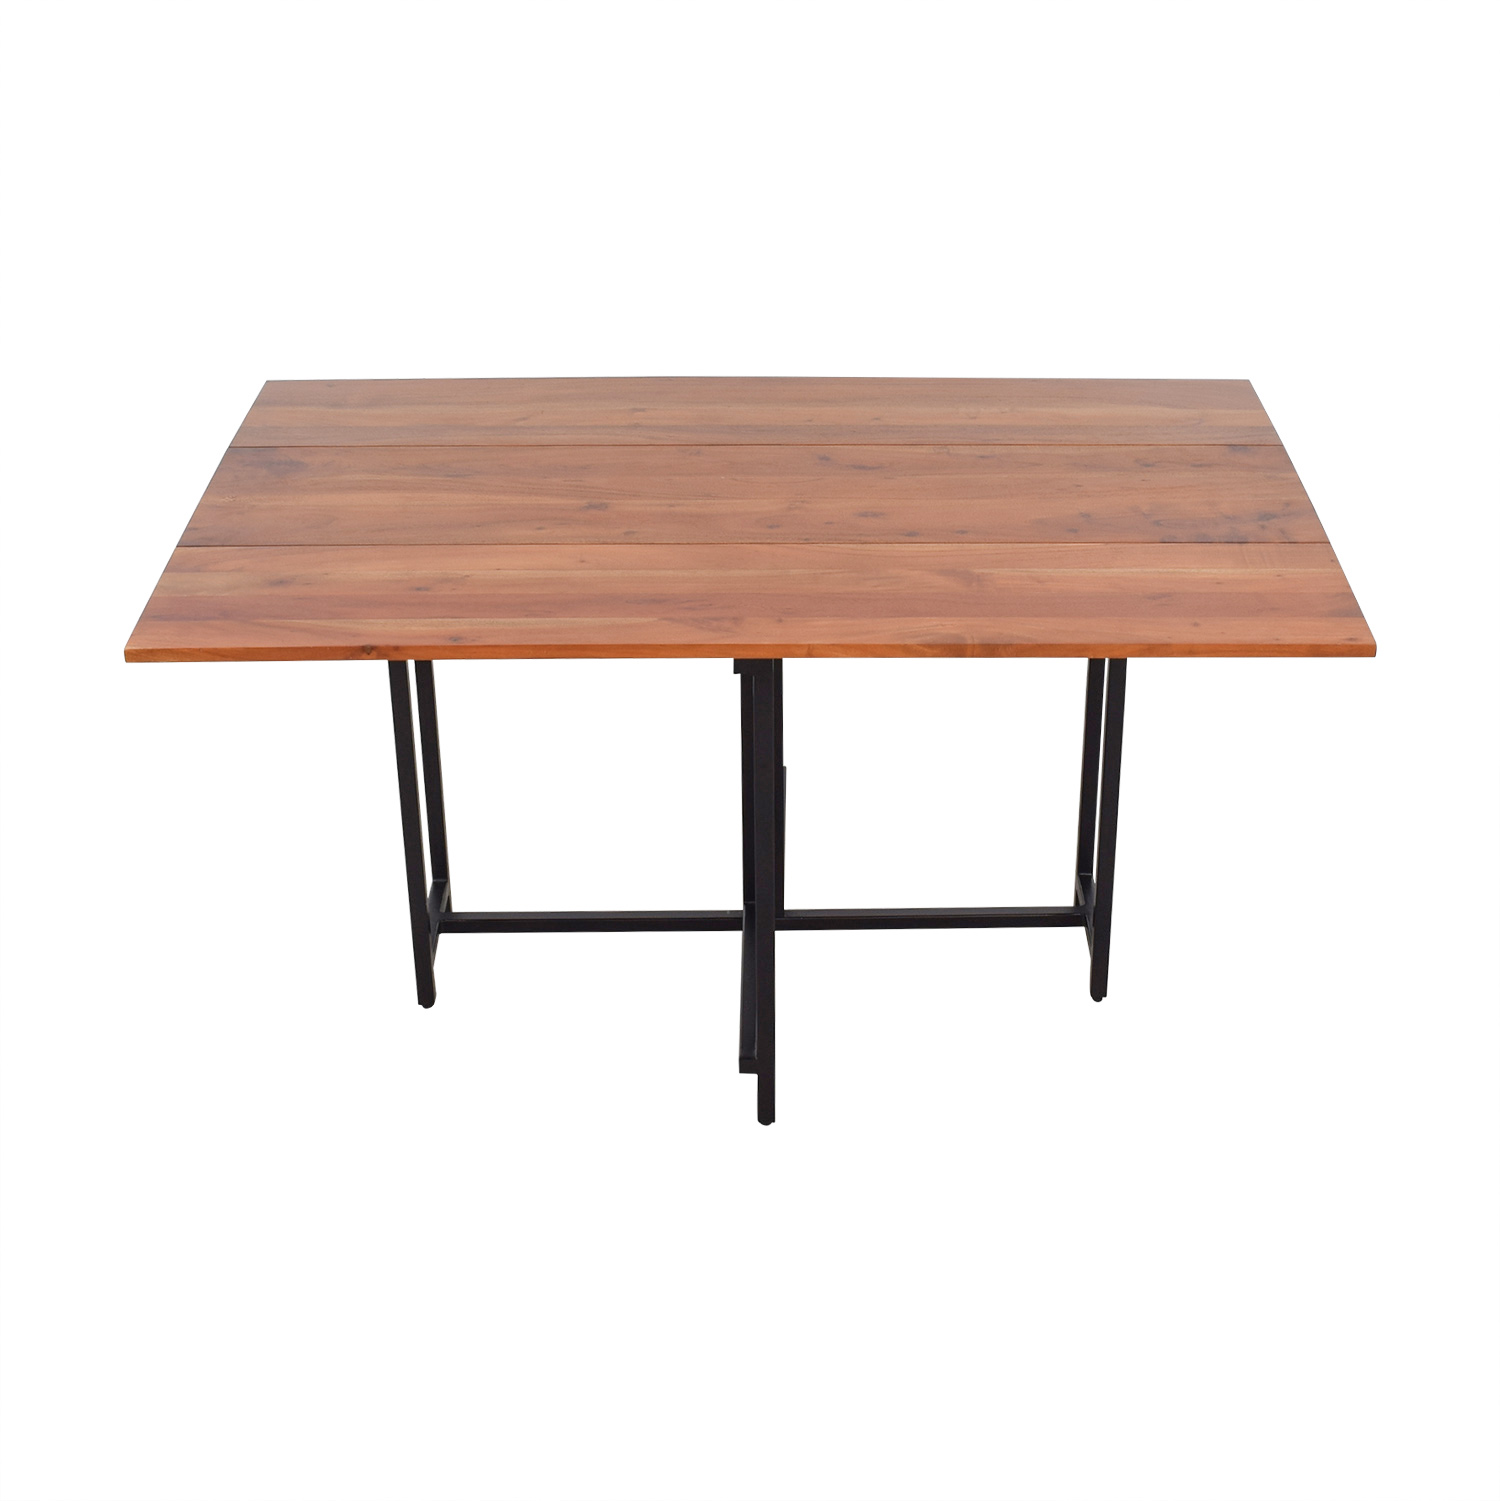 buy Crate & Barrel Origami Extendable Leaf Table Crate & Barrel Dinner Tables